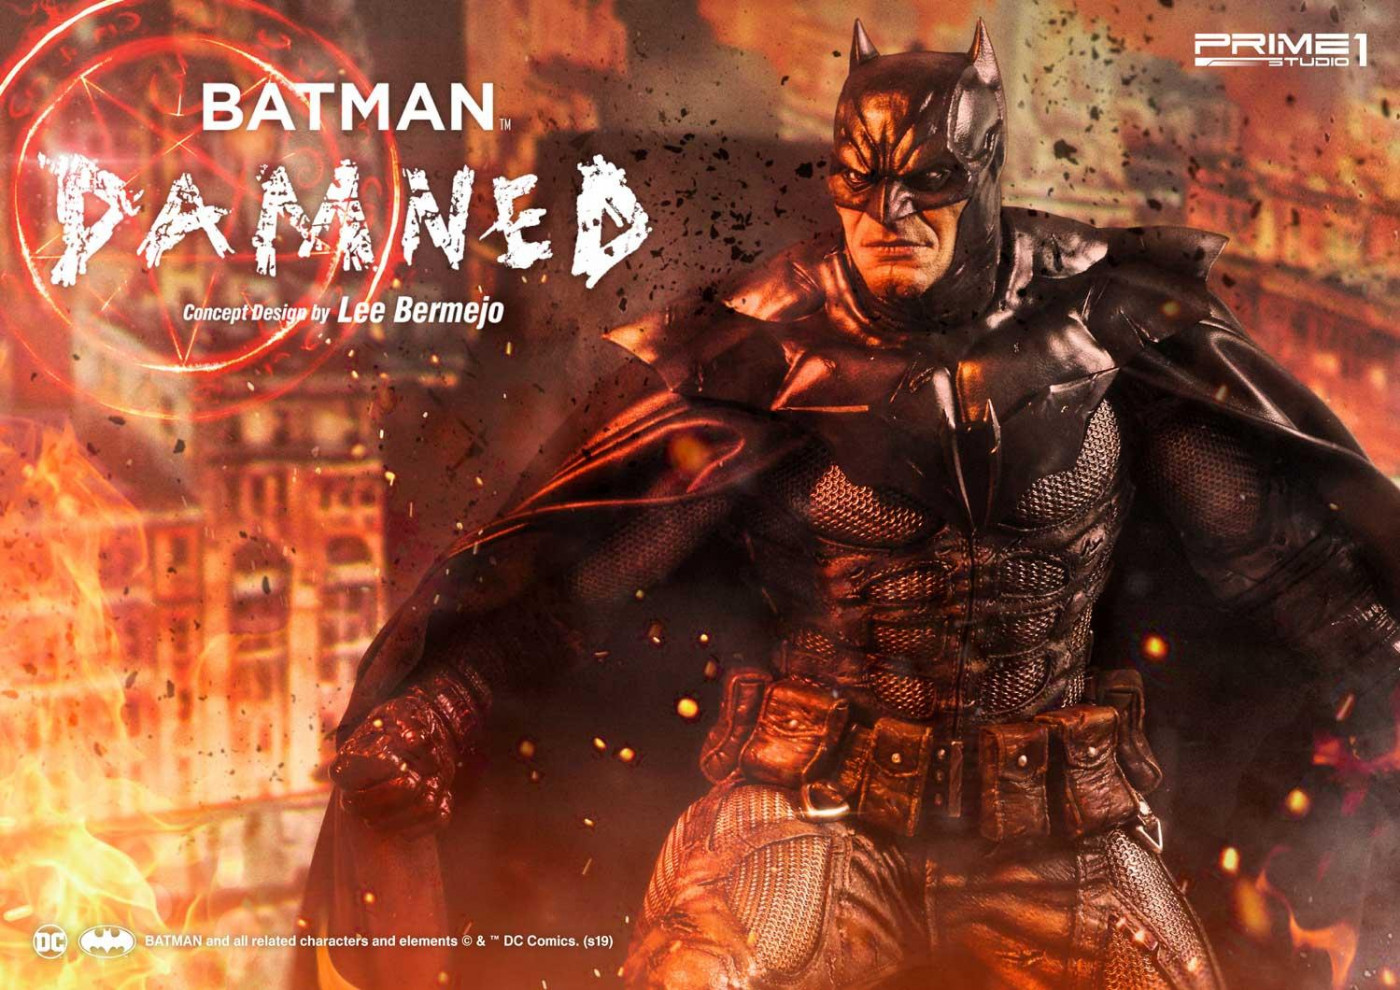 Museum Masterline Batman (Comics) Batman Damned (Concept Design by Lee Bermejo)